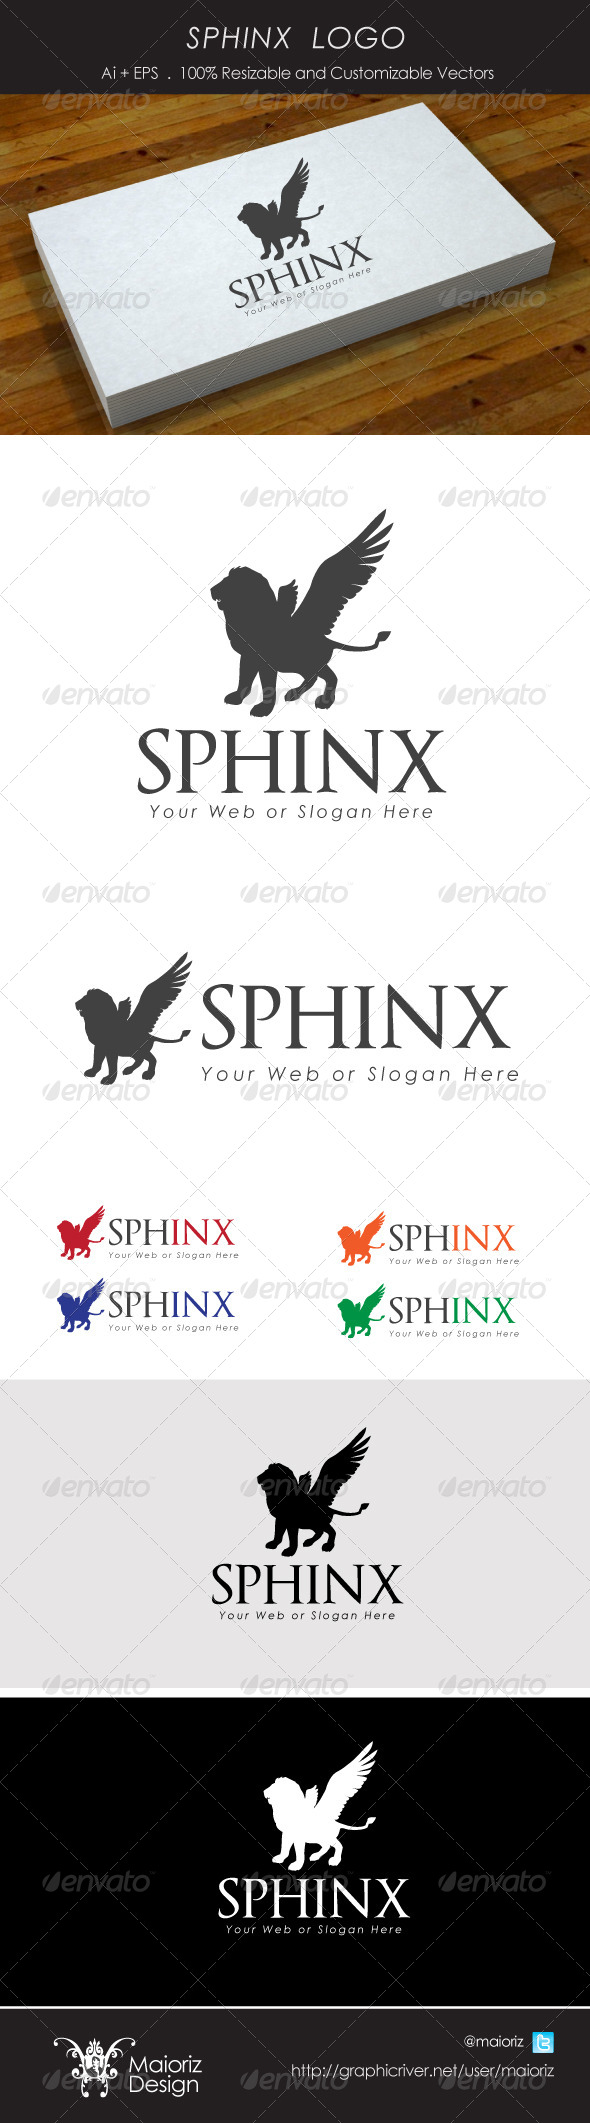 Sphinx Logotype - Animals Logo Templates